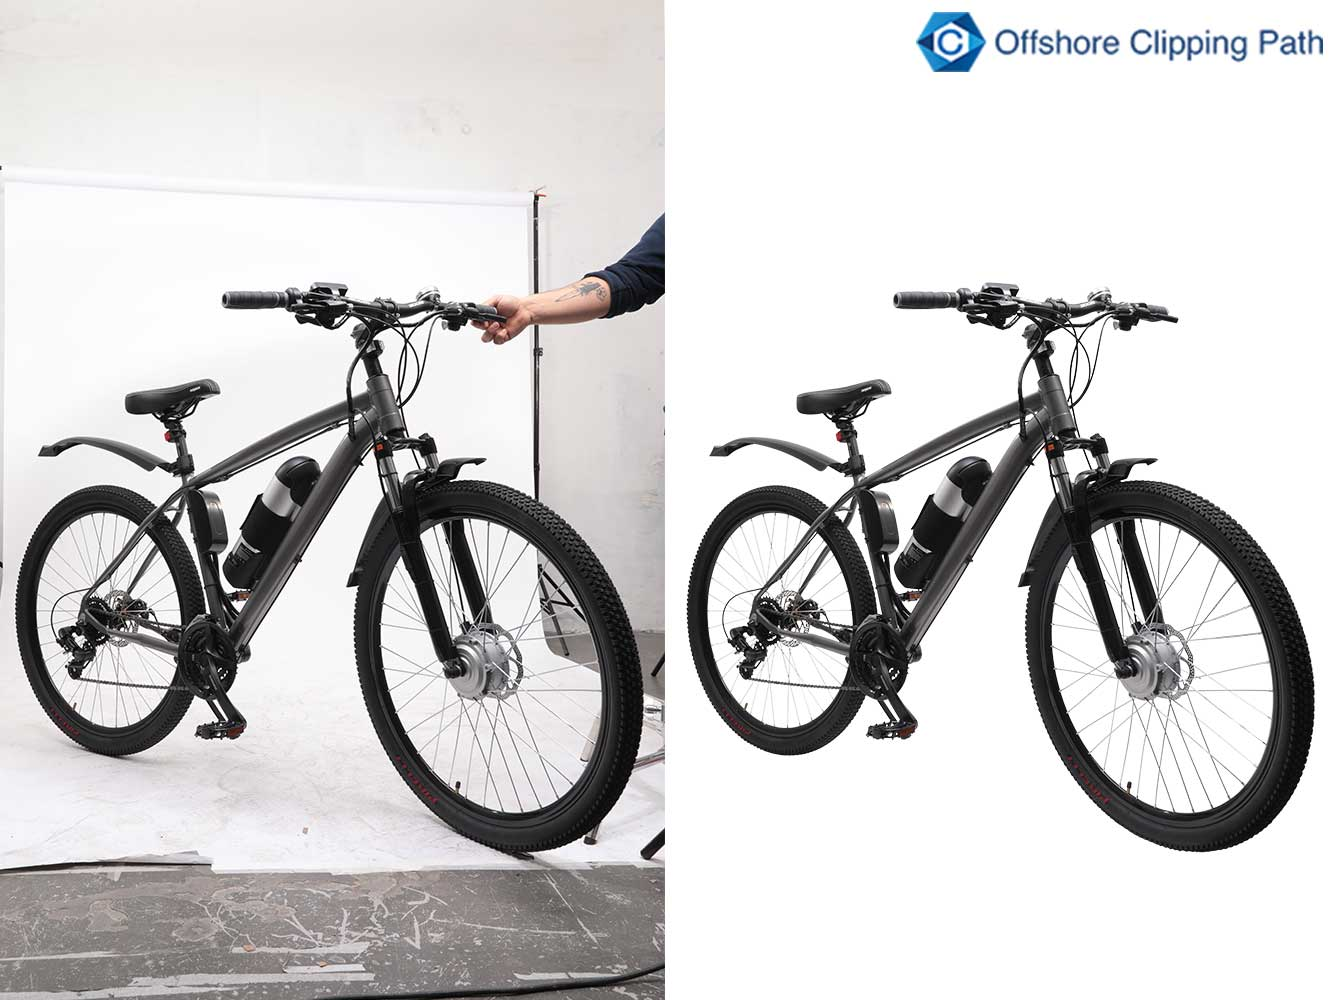 clipping path - offshore clipping path